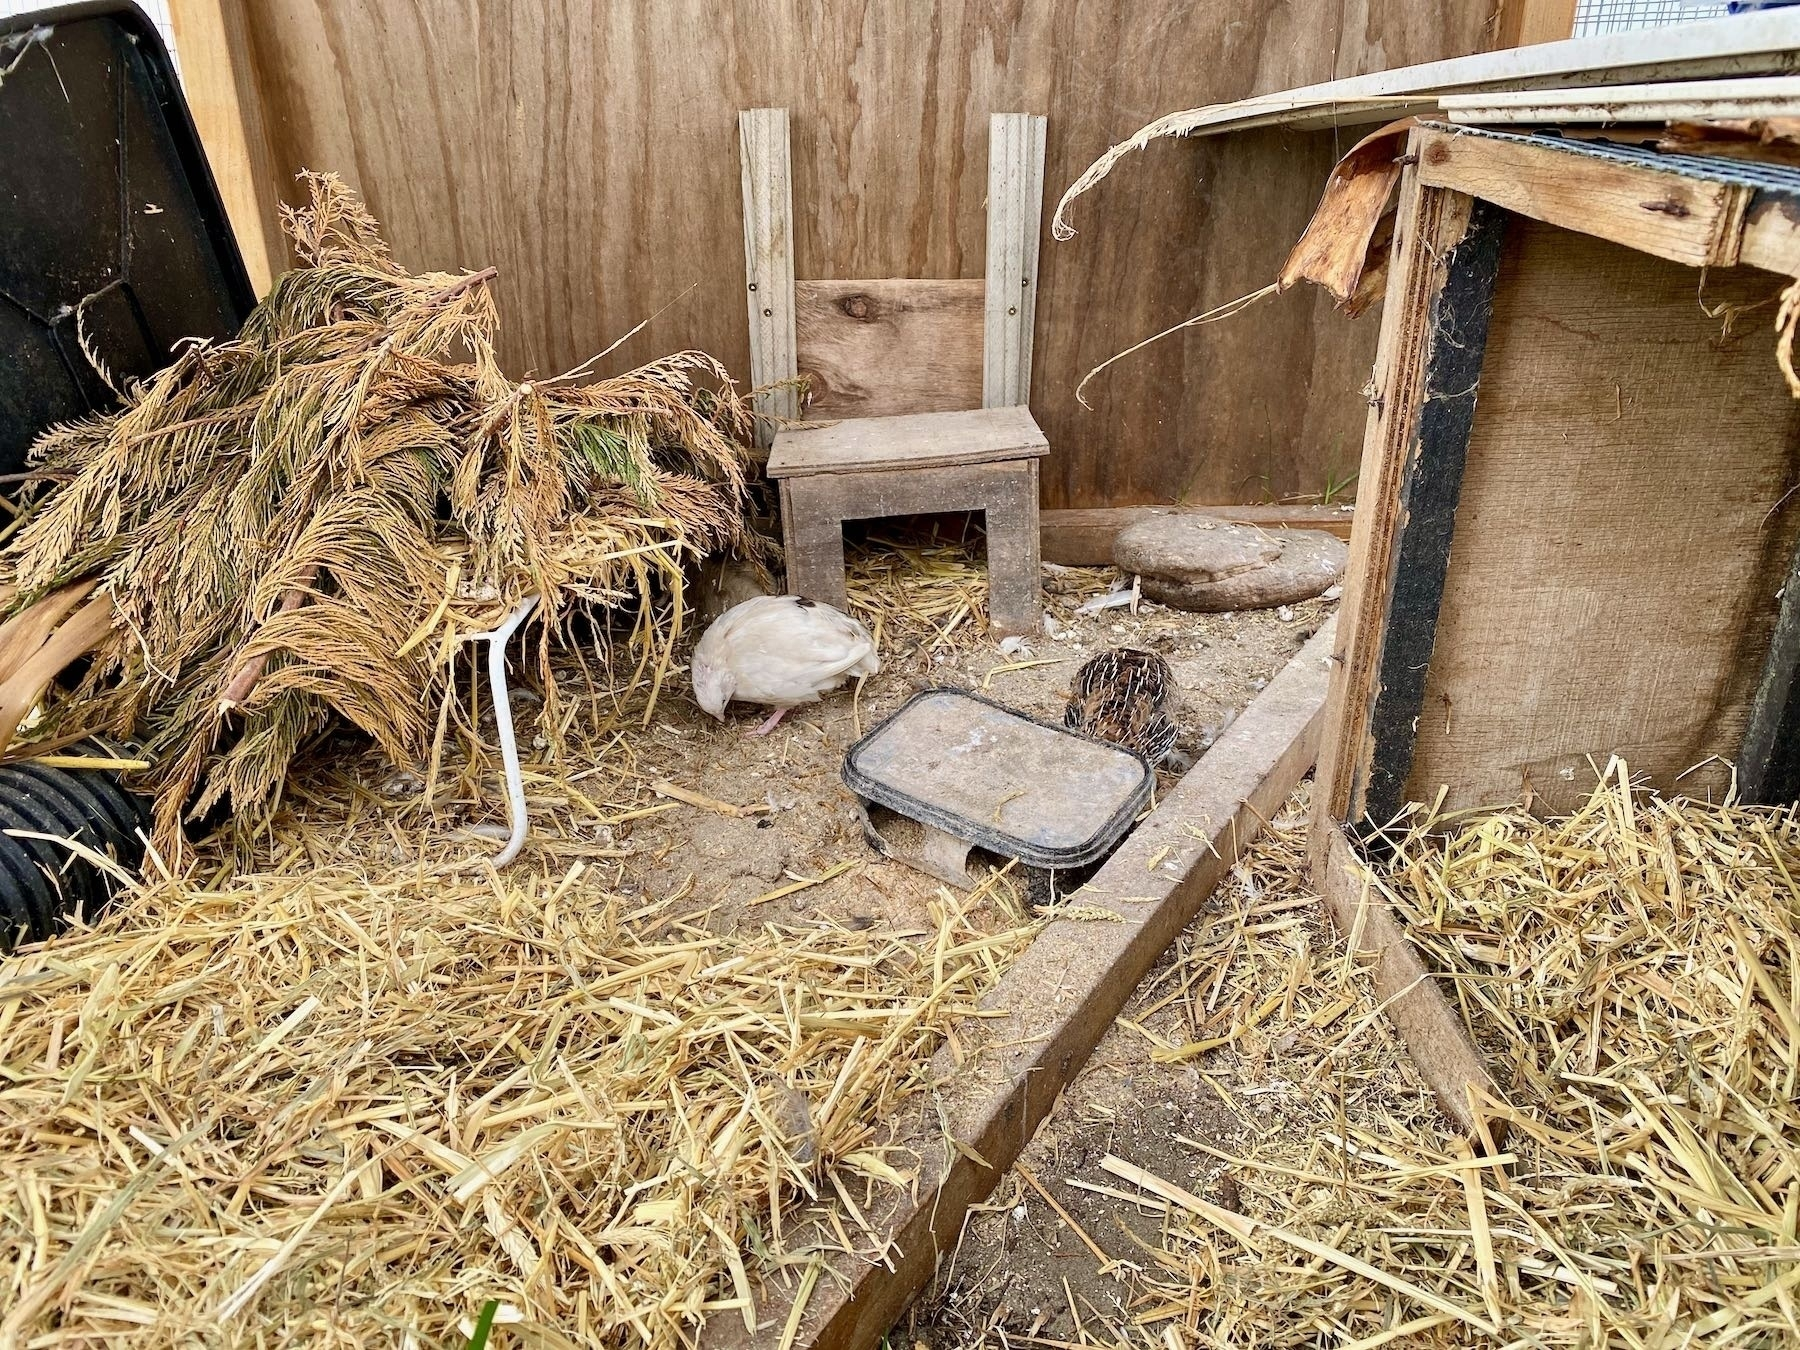 Two quail by the food bowl.